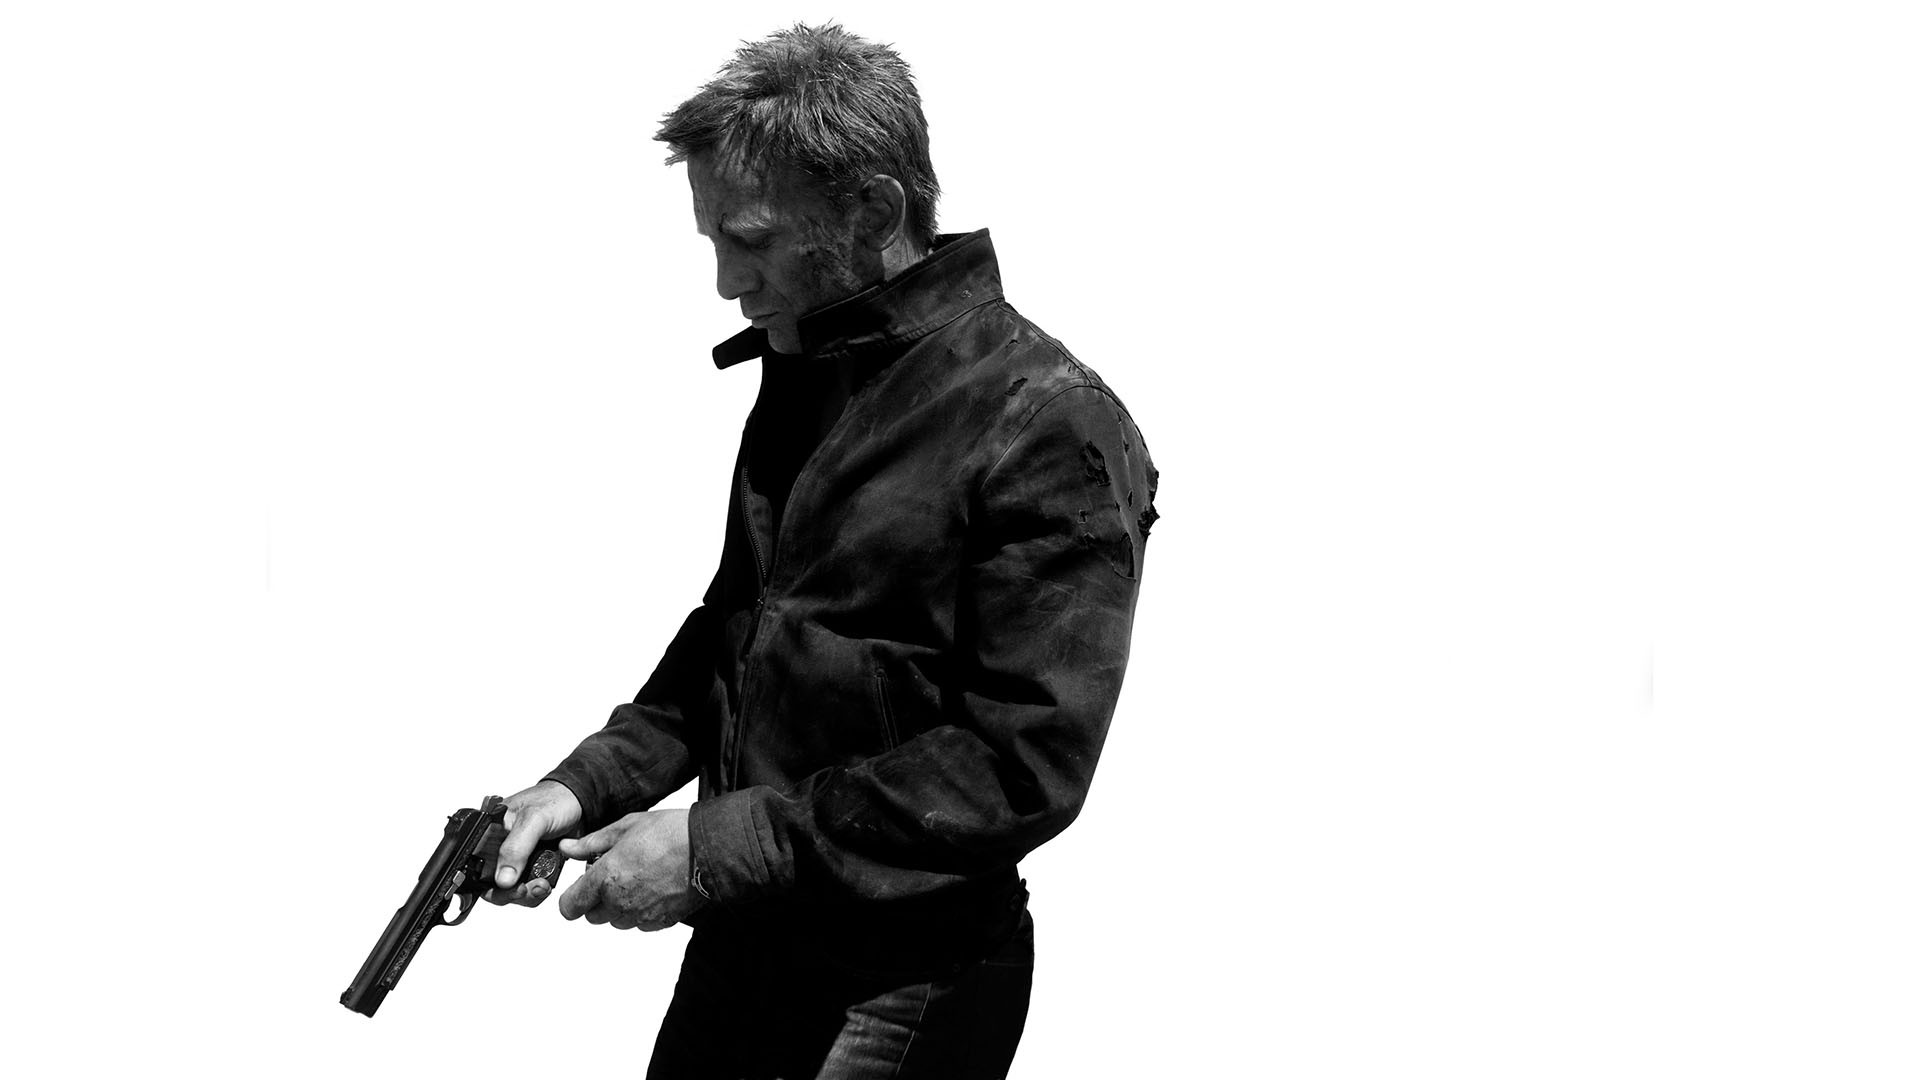 james Bond 007 Skyfall White Handgun Bw Daniel Craig Dark 1920x1080